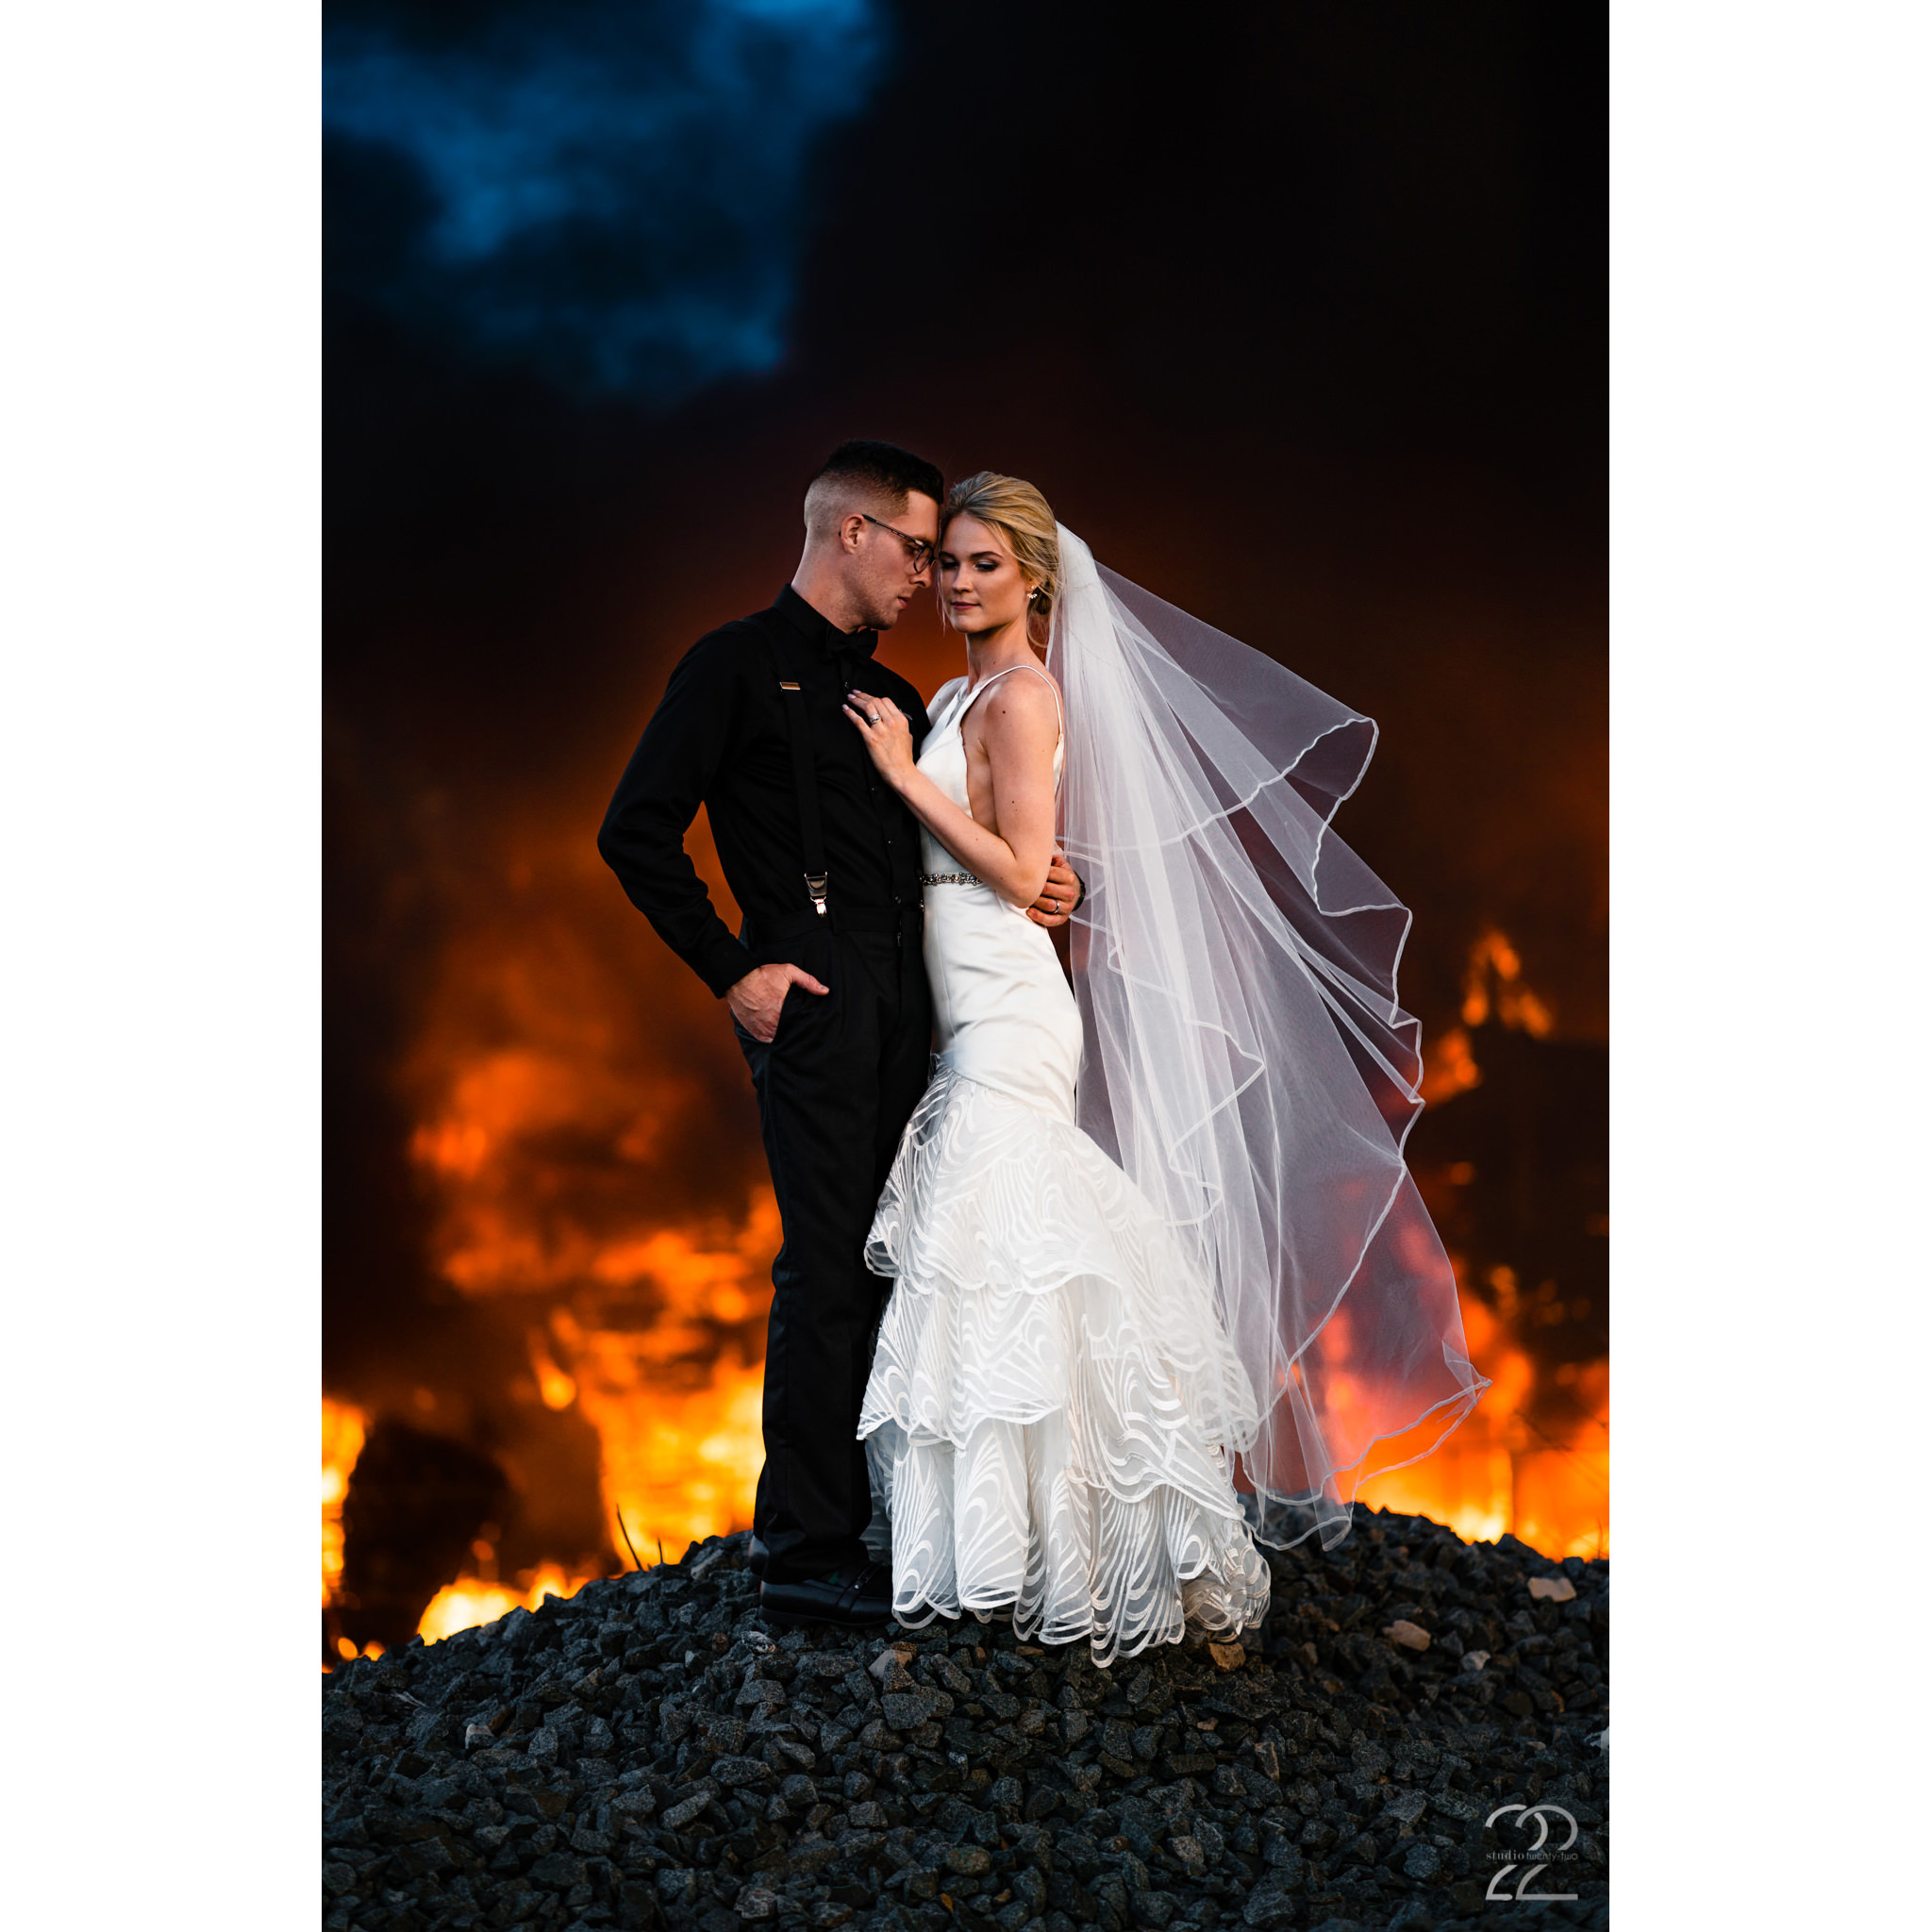 Burning passion… Megan loves when couples ask to do rad things (like take photos at a fire - all rules from emergency personal were respected). When you are open to doing crazy things, beautifully unique wedding portraits are easy to make!